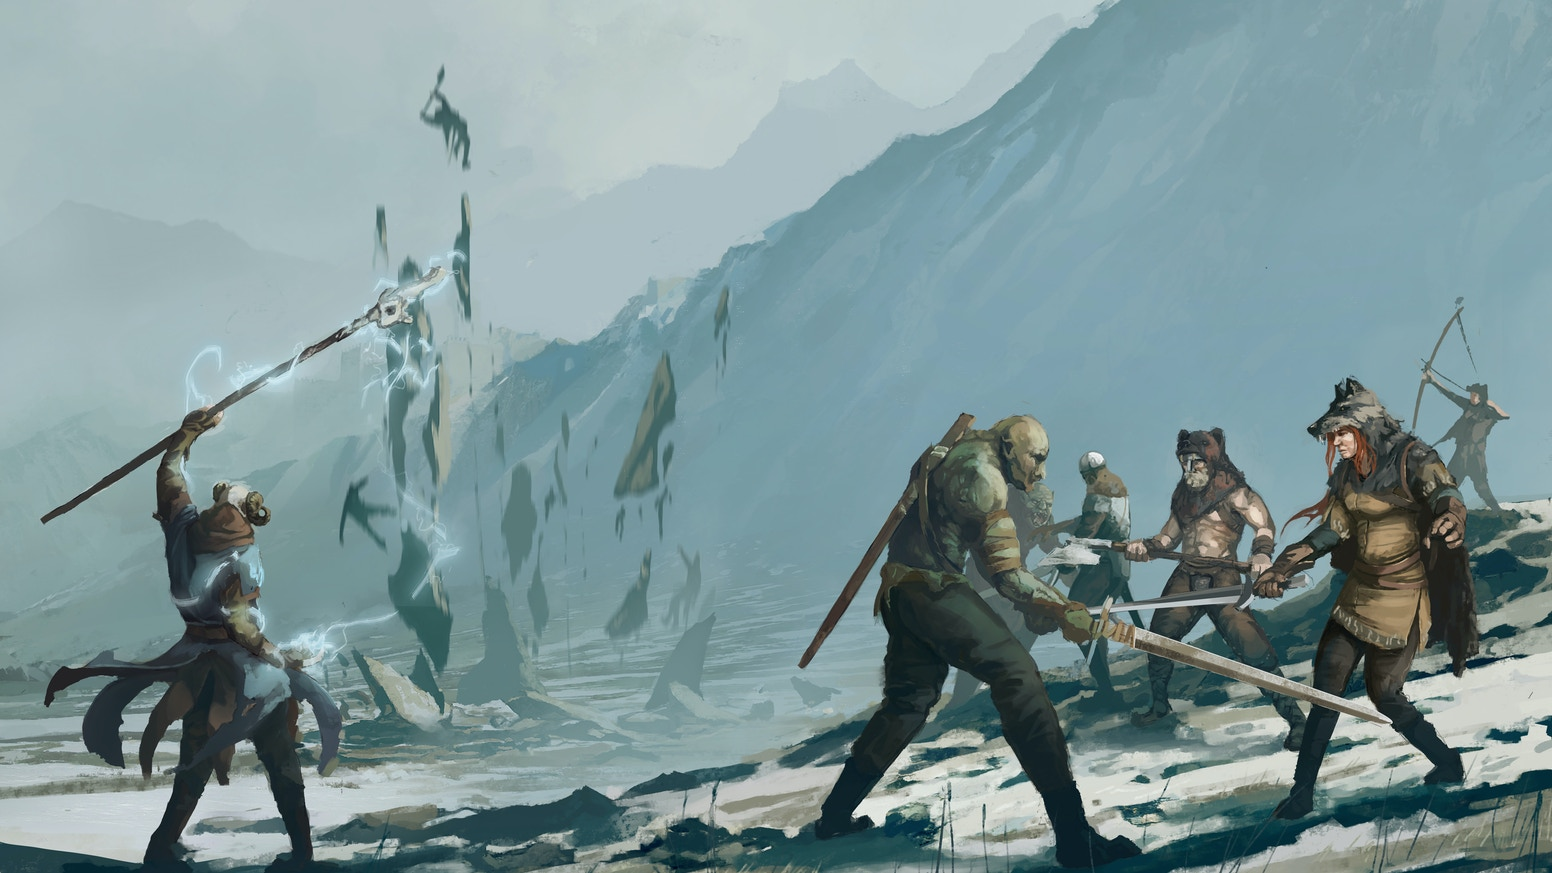 Welcome back to an era of epic adventure in the Ice Kingdoms, an early edition Fantasy Role Playing Game (RPG) setting.